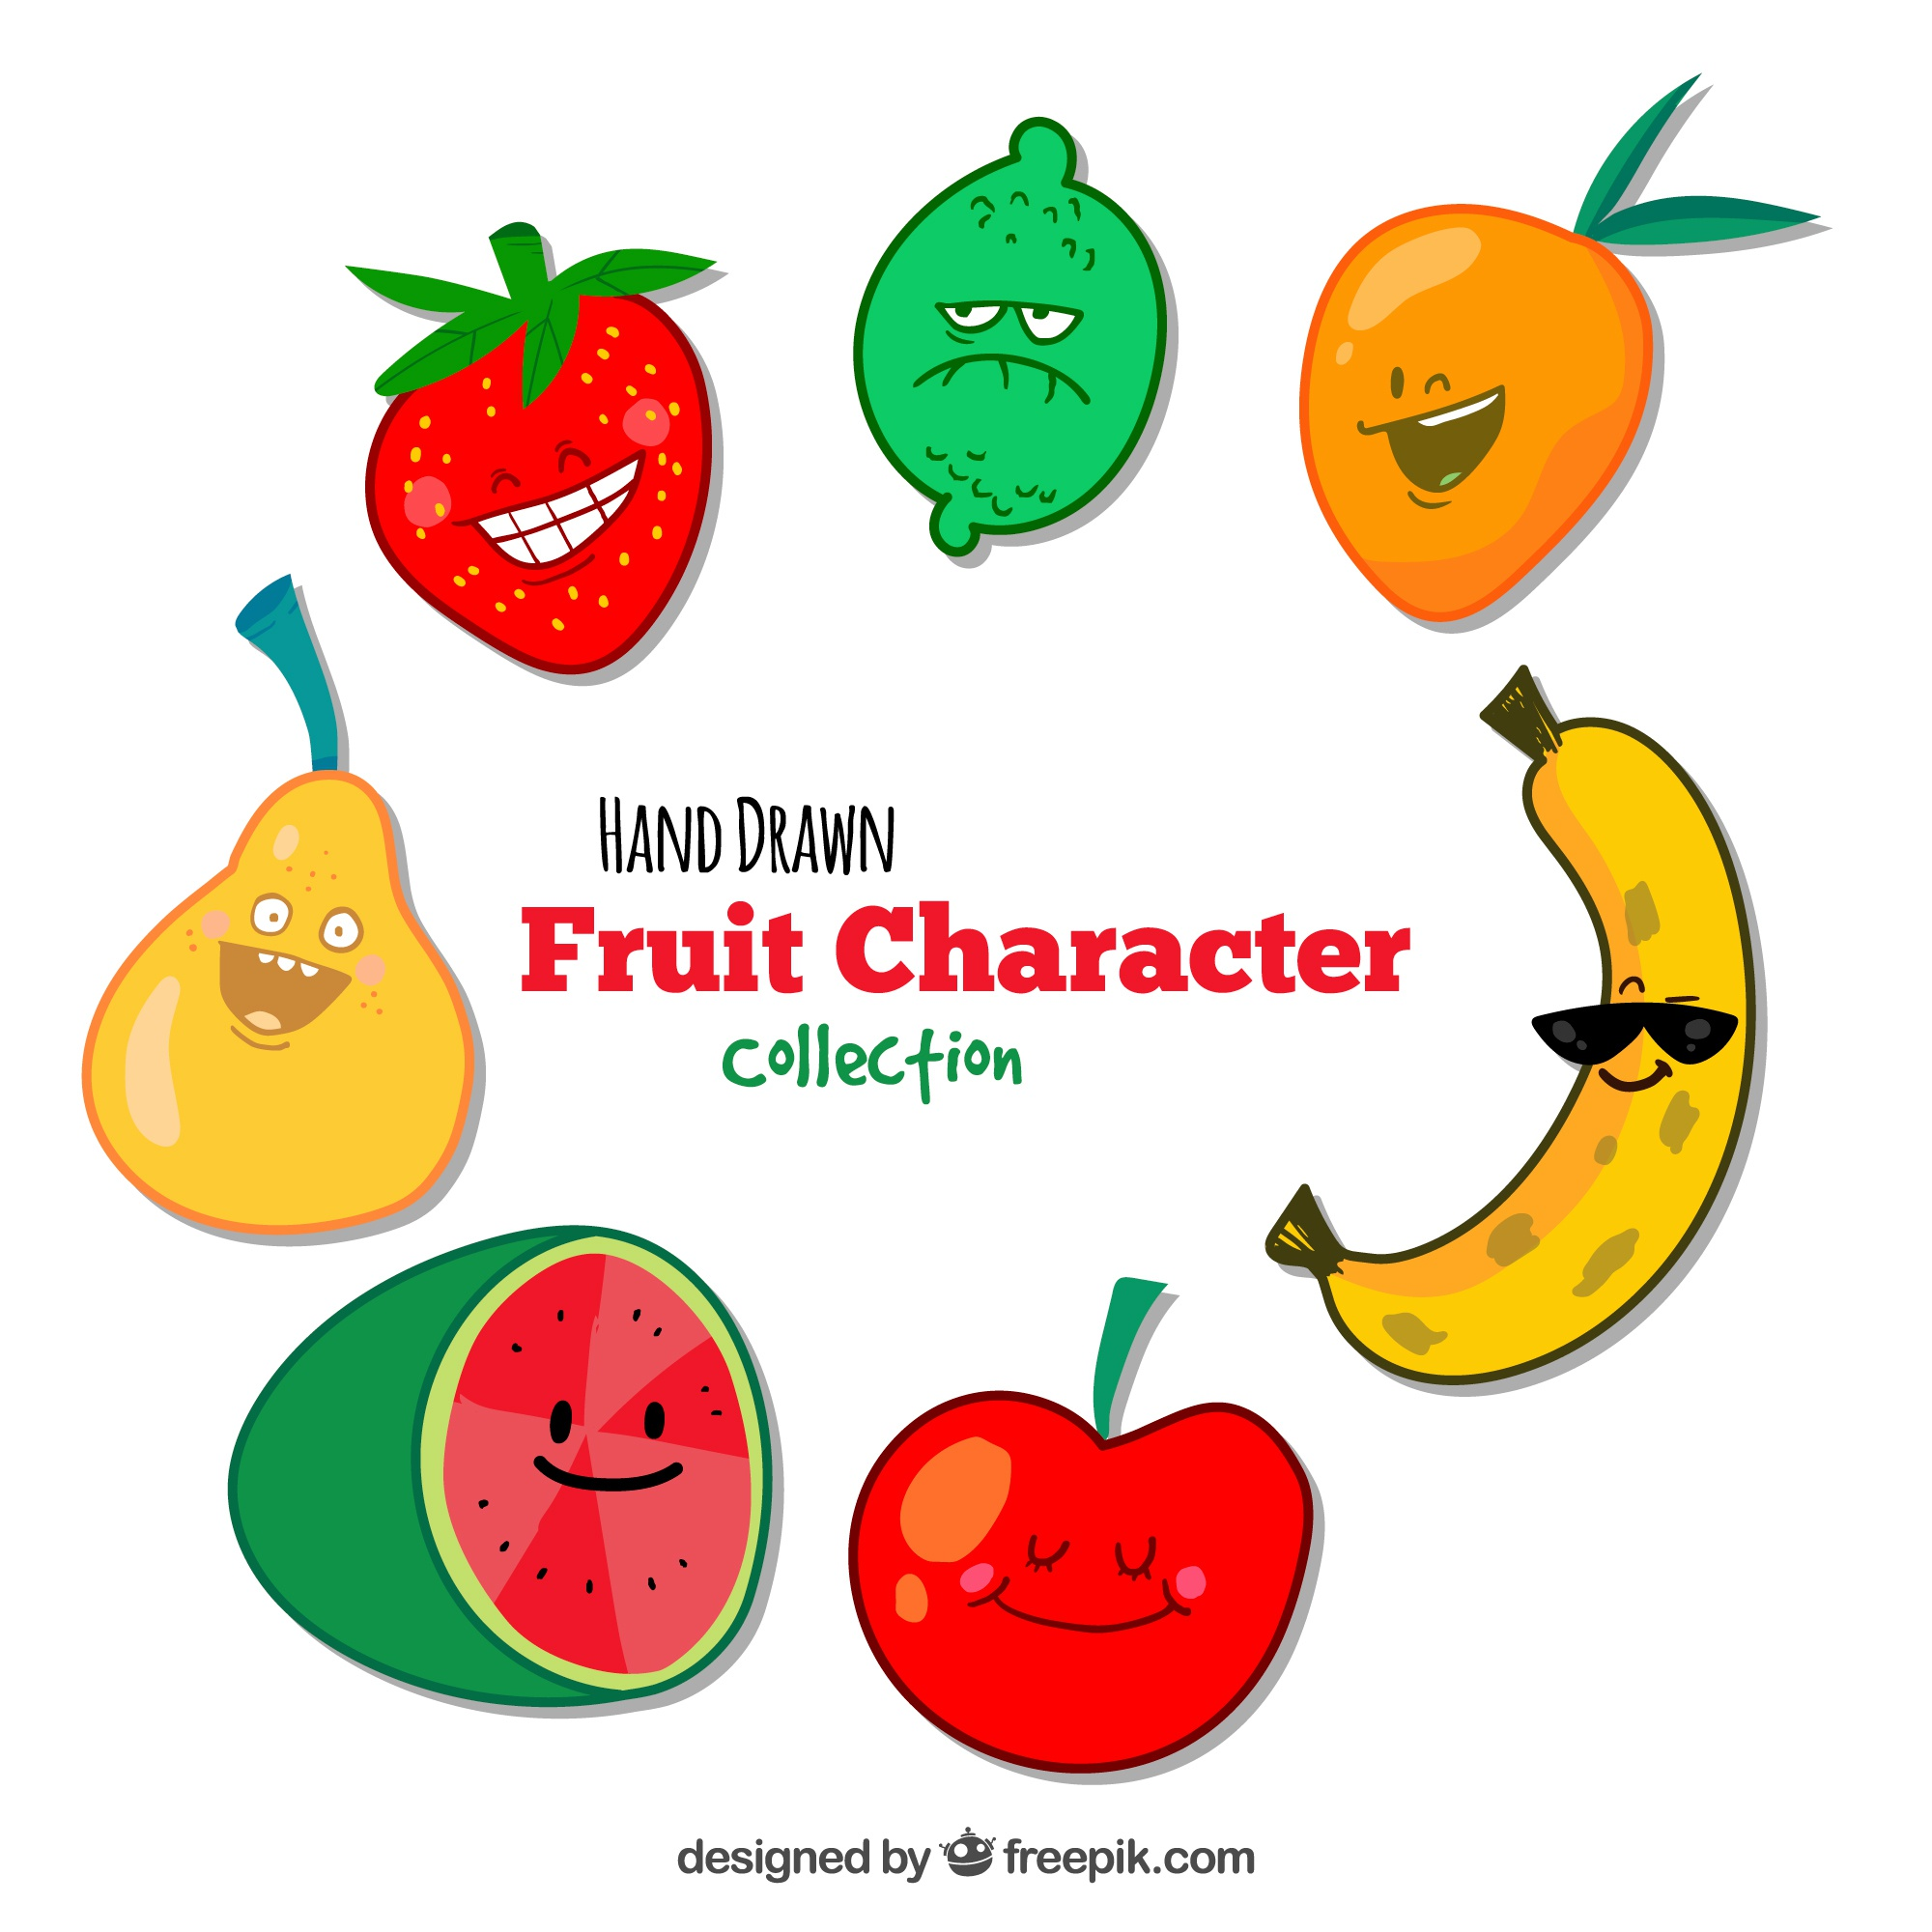 Hand drawn fruit character collection